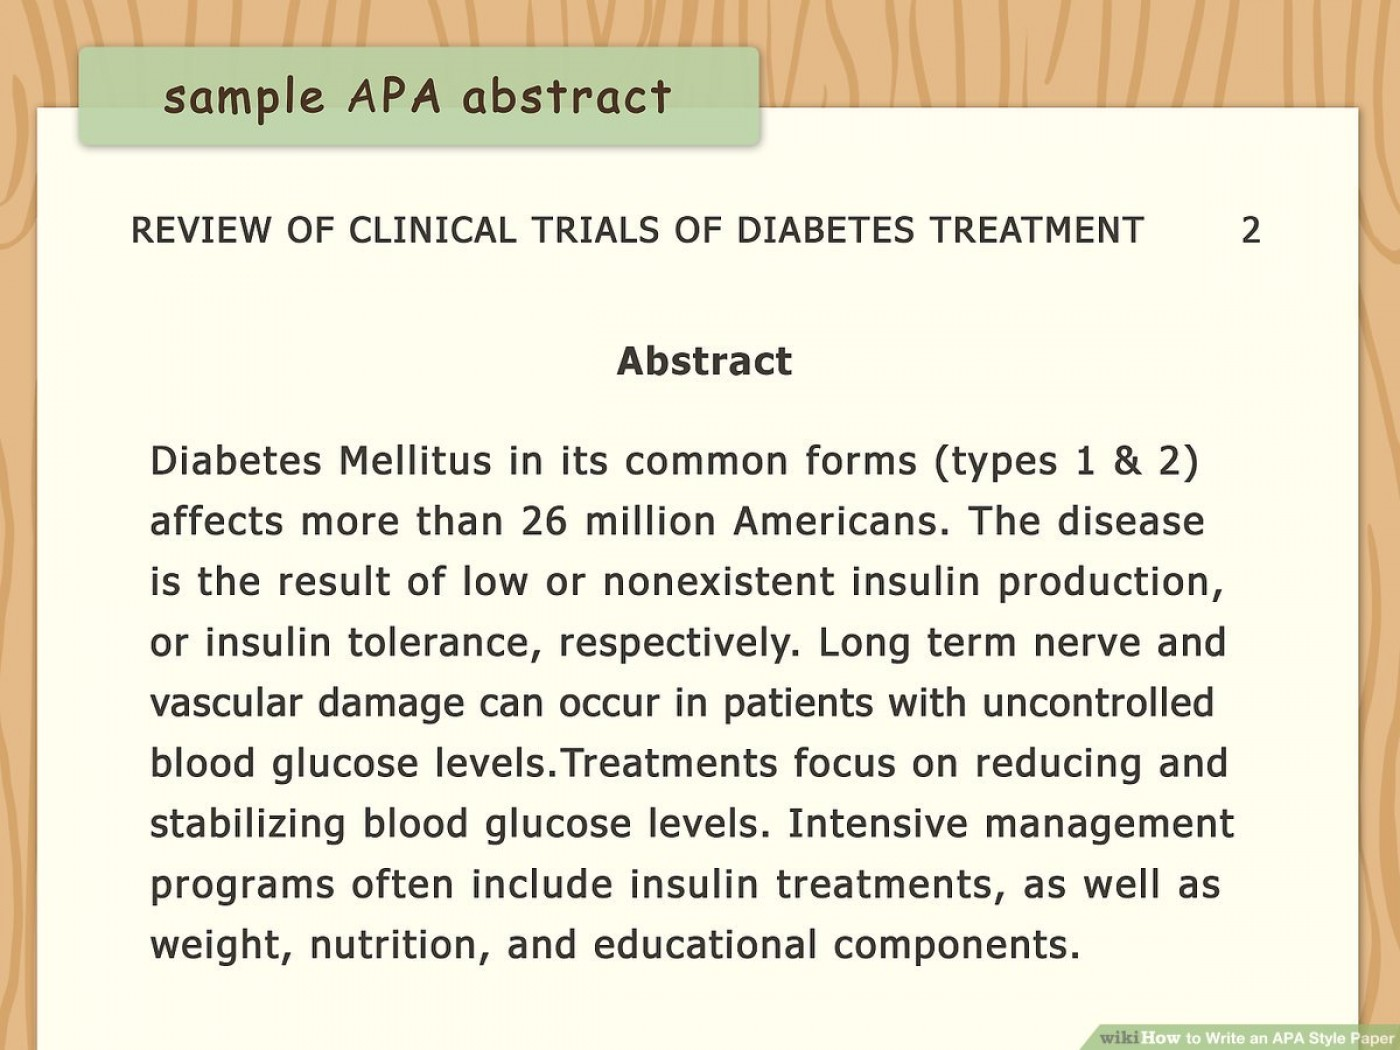 008 Diabetes Mellitus Research Paper Outline Aid1156038 V4 1200px Write An Apa Style Step Version Rare 1400